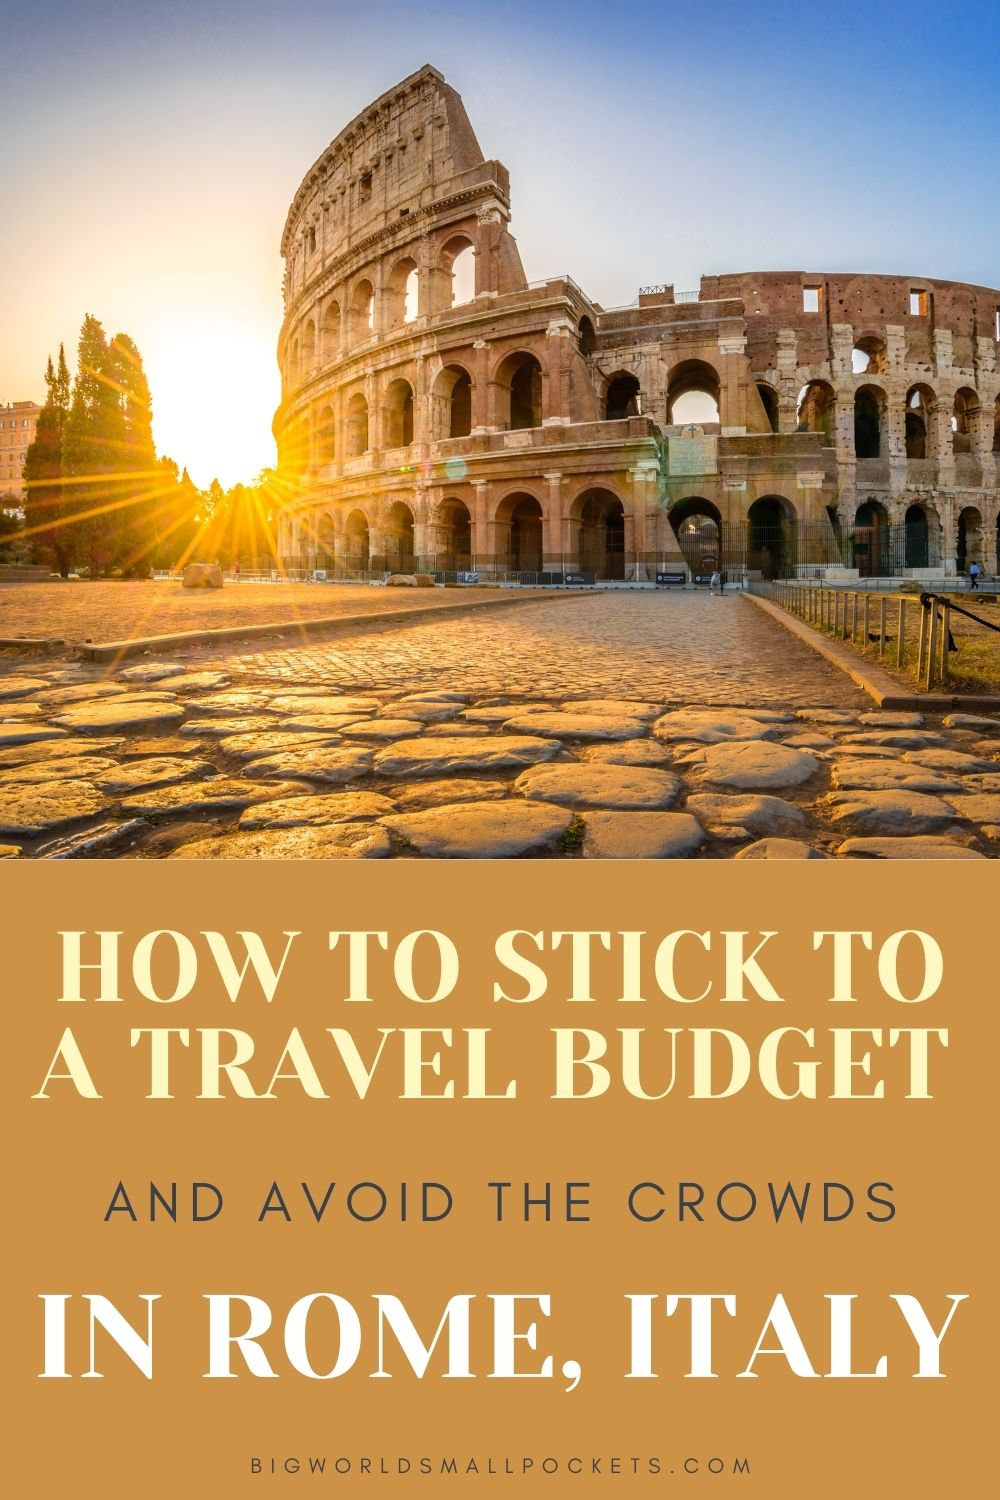 How to Stick to a Travel Budget in Rome